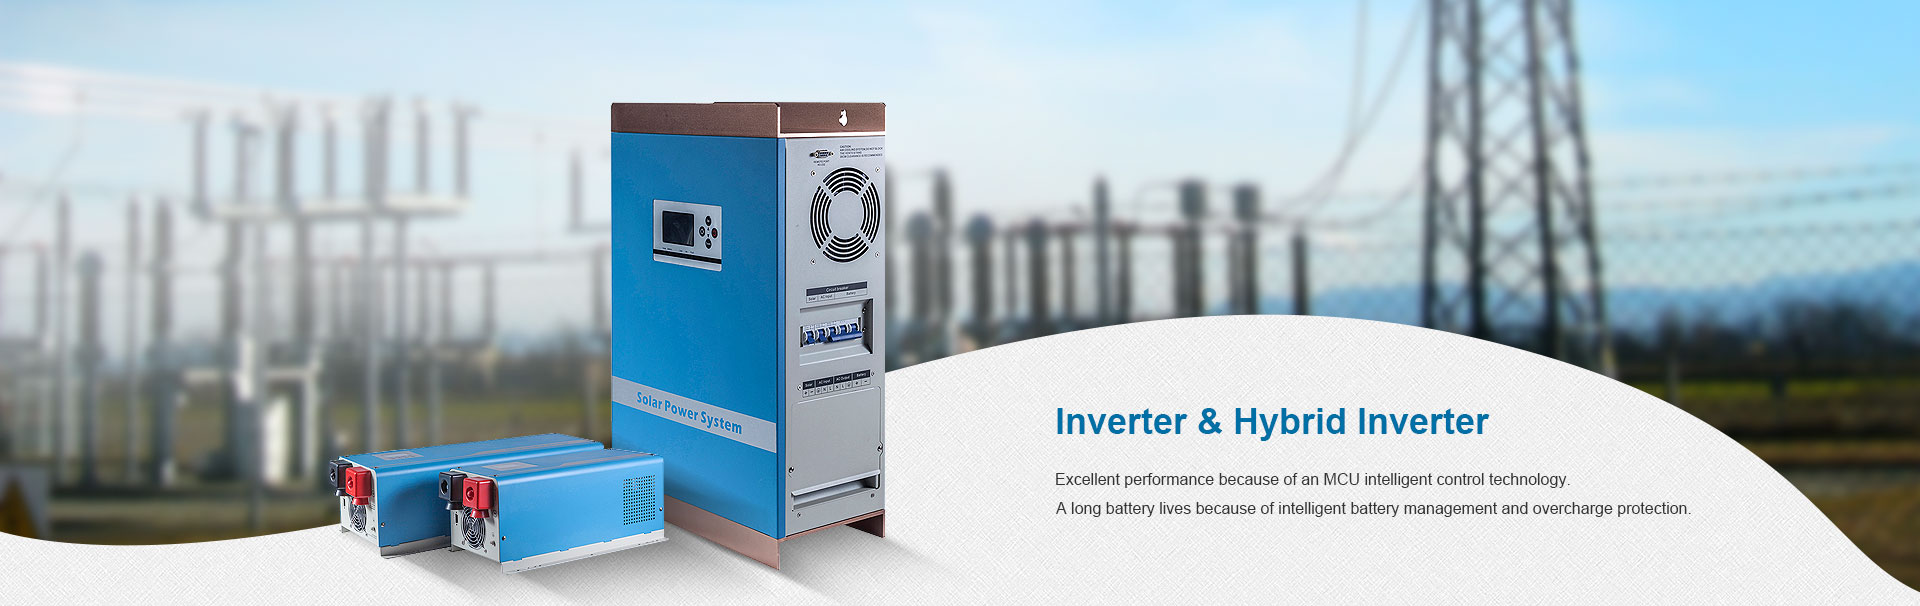 solar power Inverter built-in solar controller